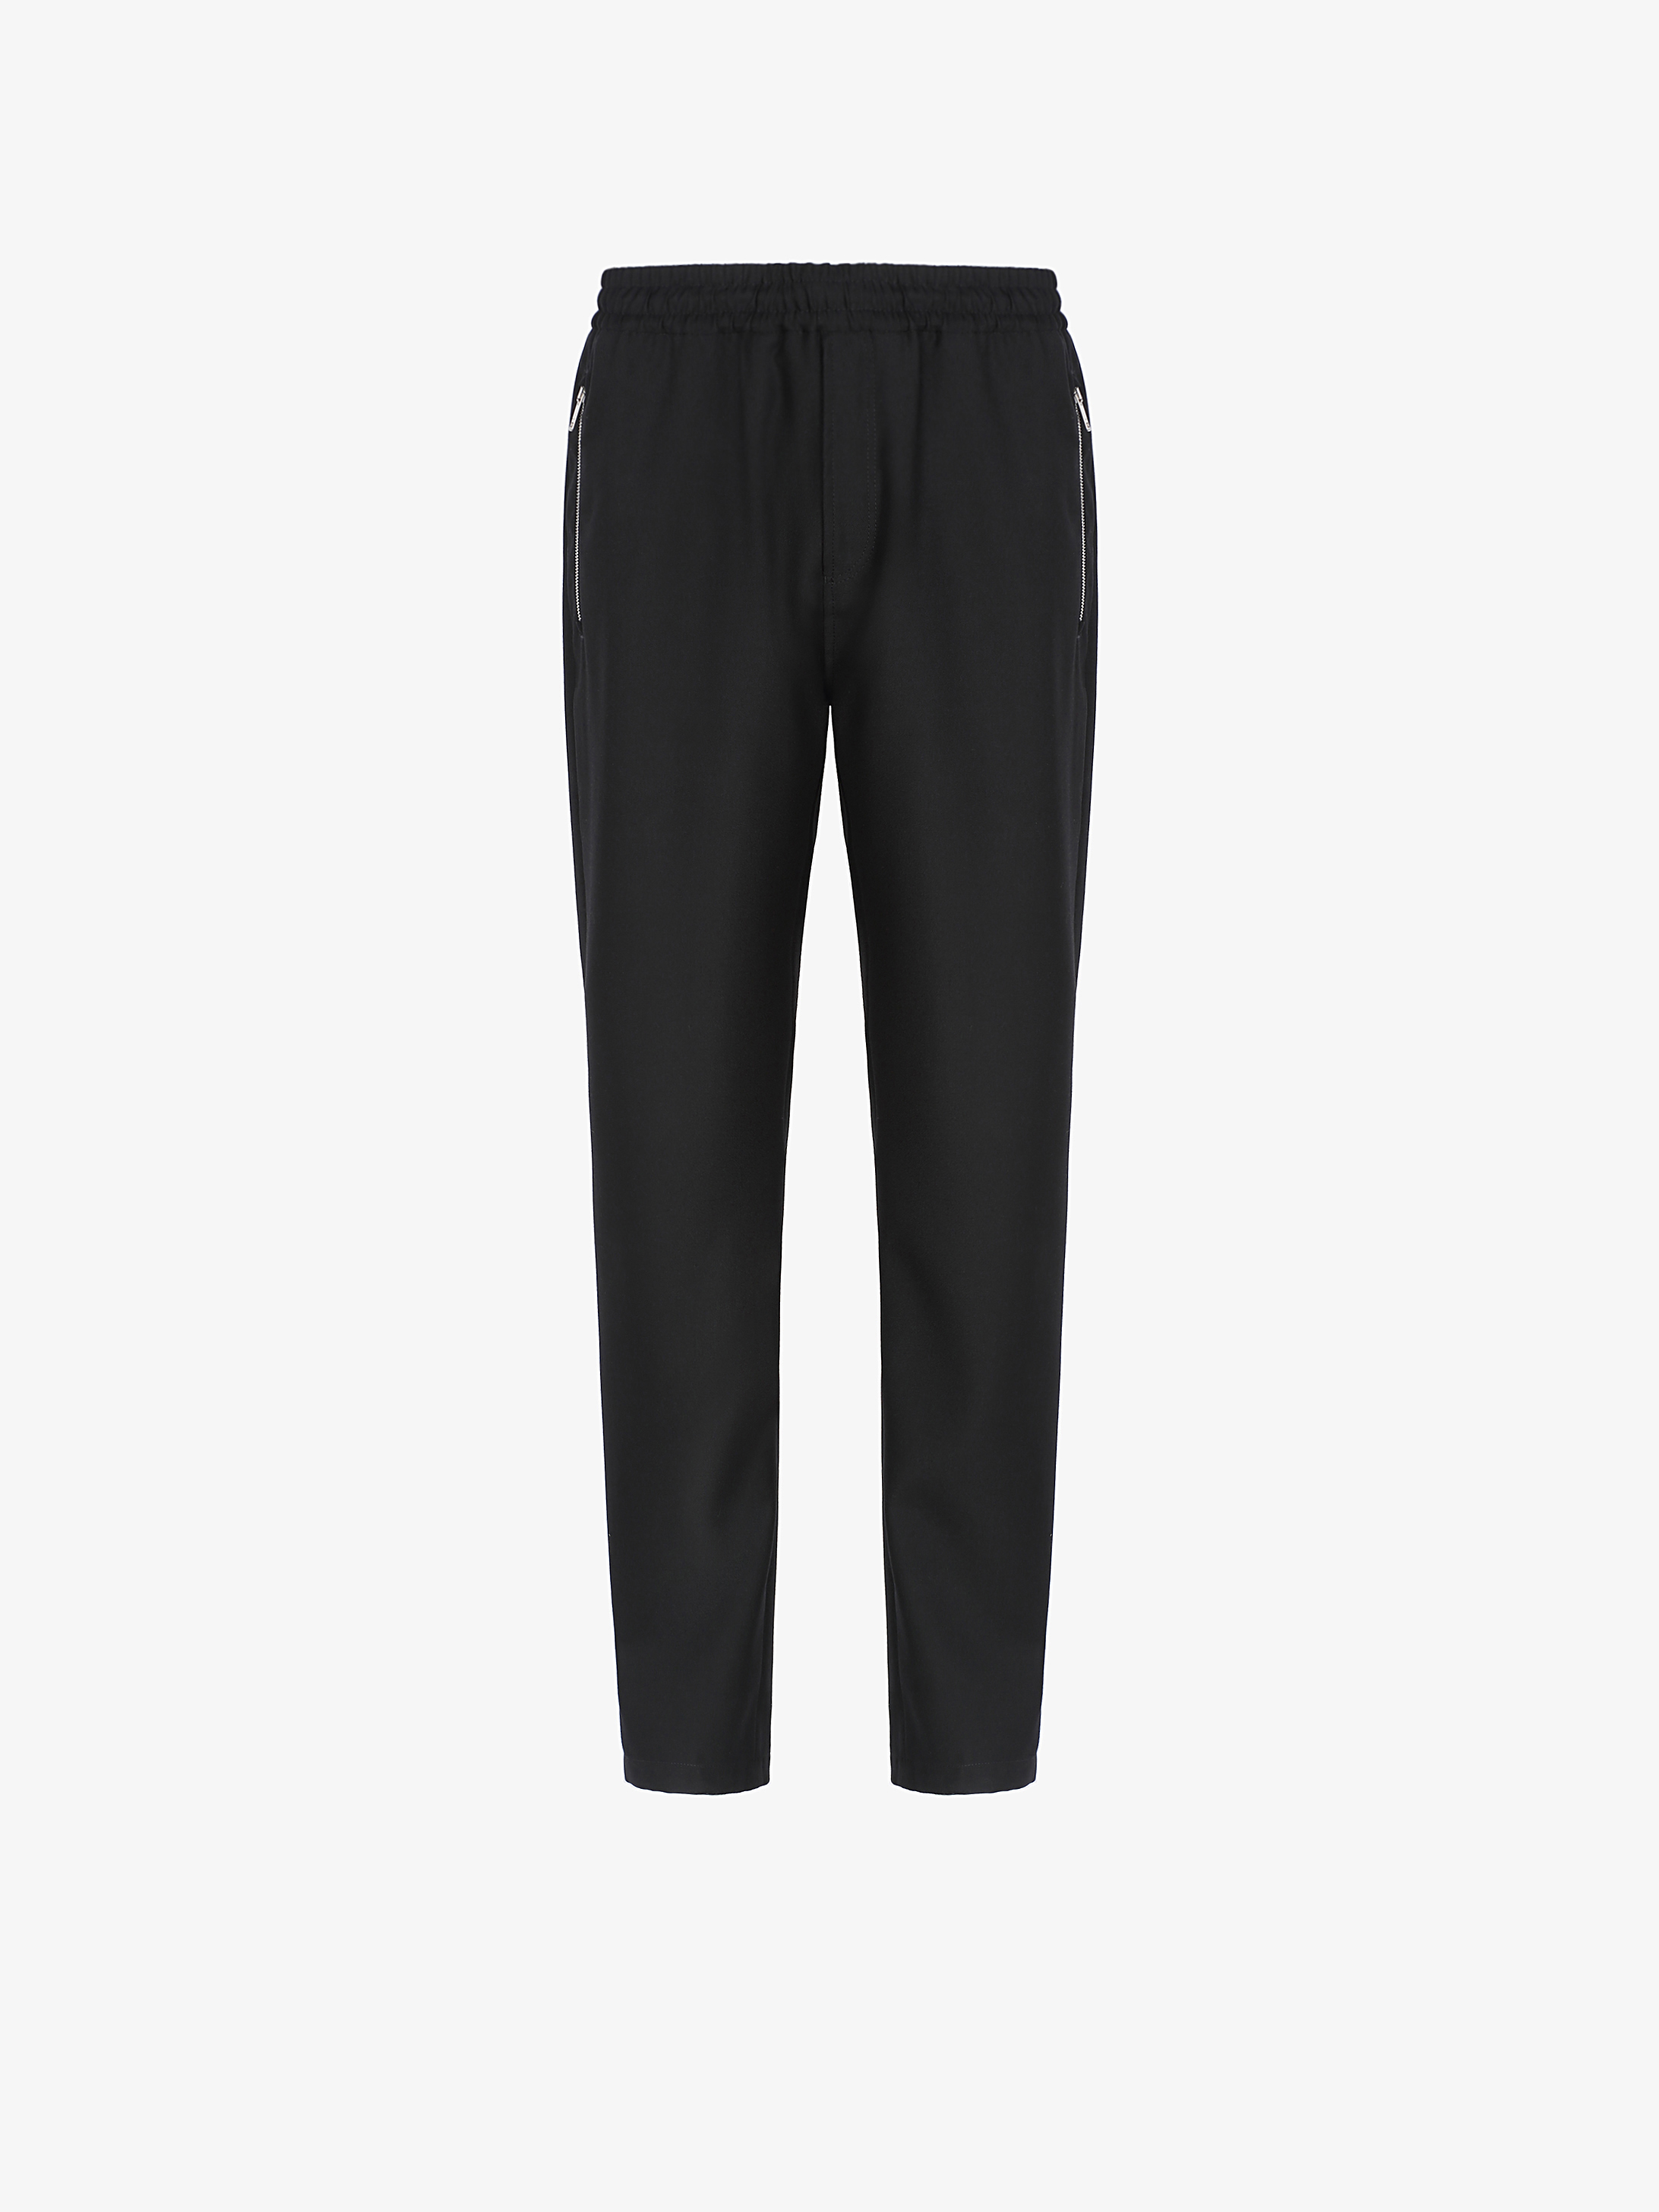 GIVENCHY jogger pants in wool